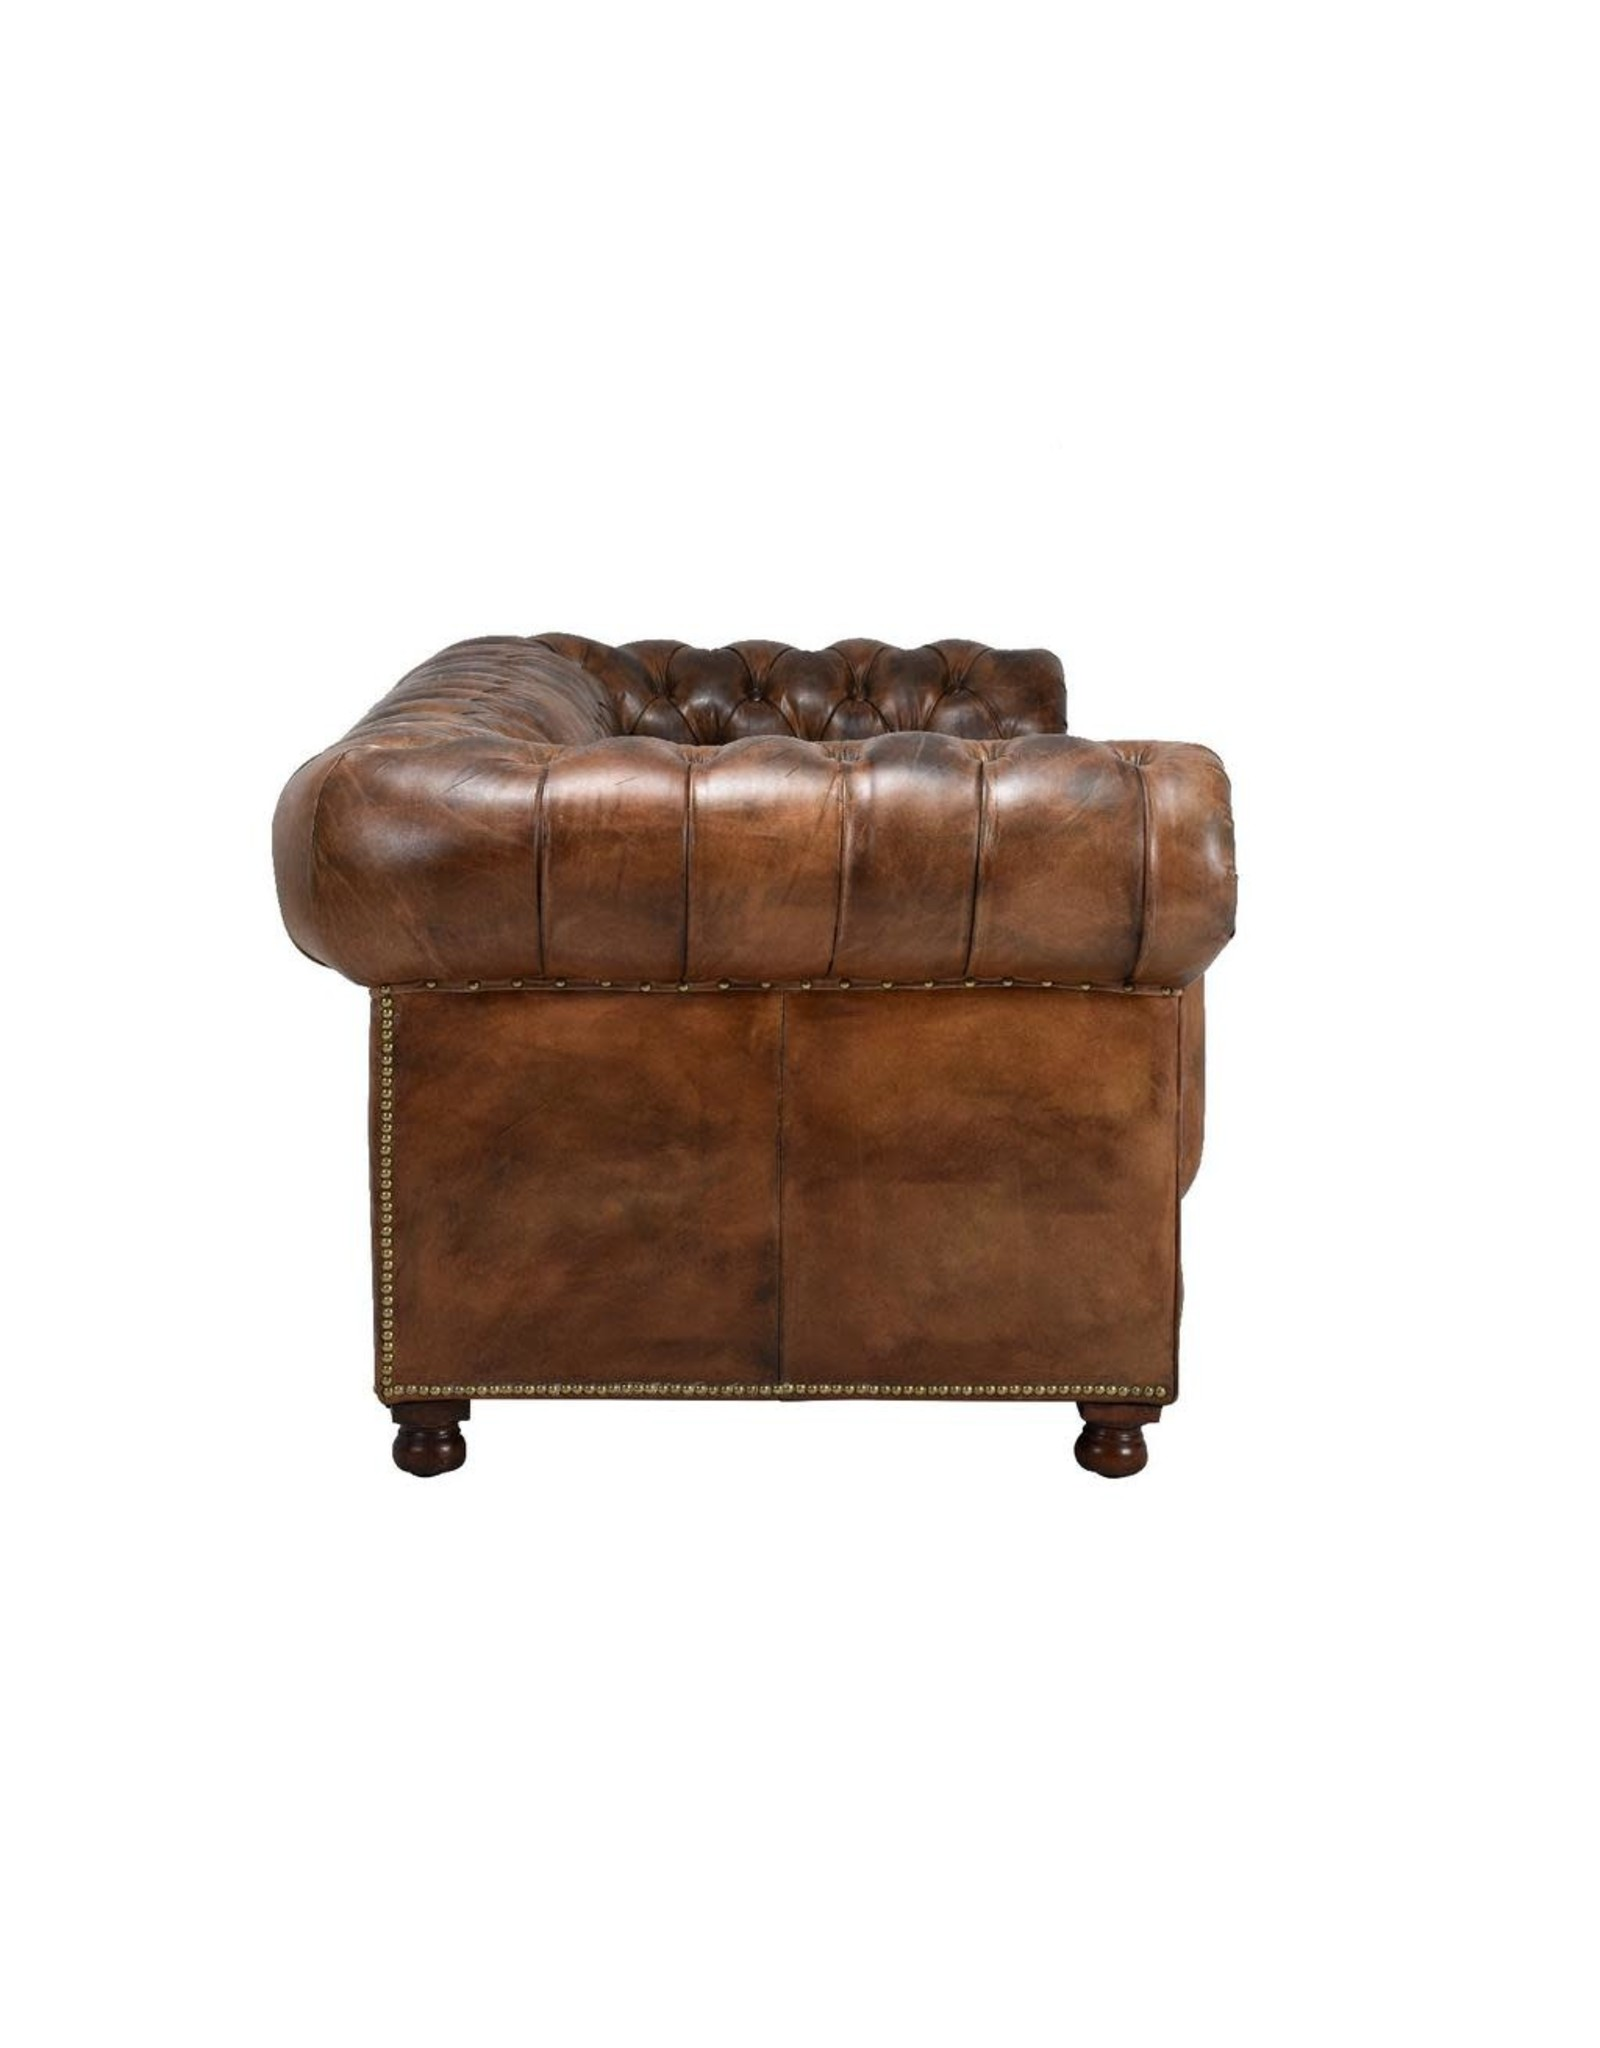 TIMOTHY OULTON WESTMINSTER BOTTON SOFA 3 SEATER - BUCKD'N BROKN